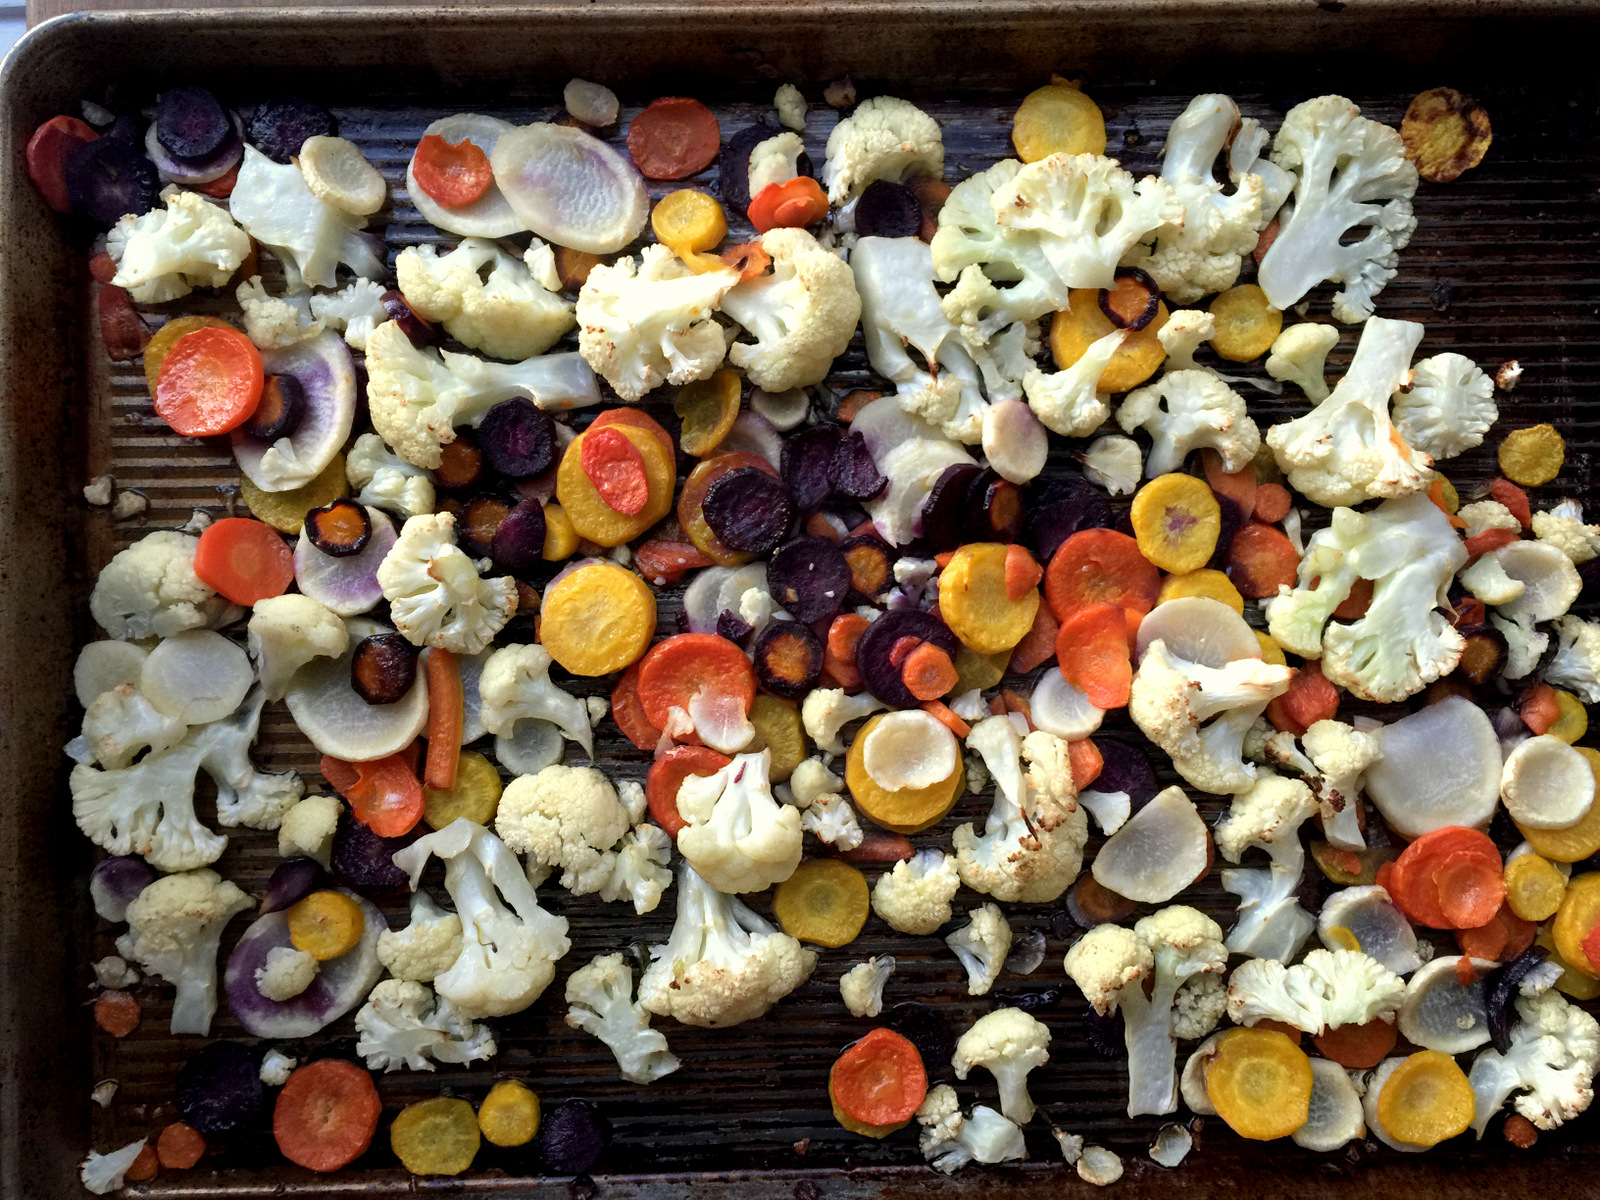 Roasted cauliflower and carrots on baking sheet